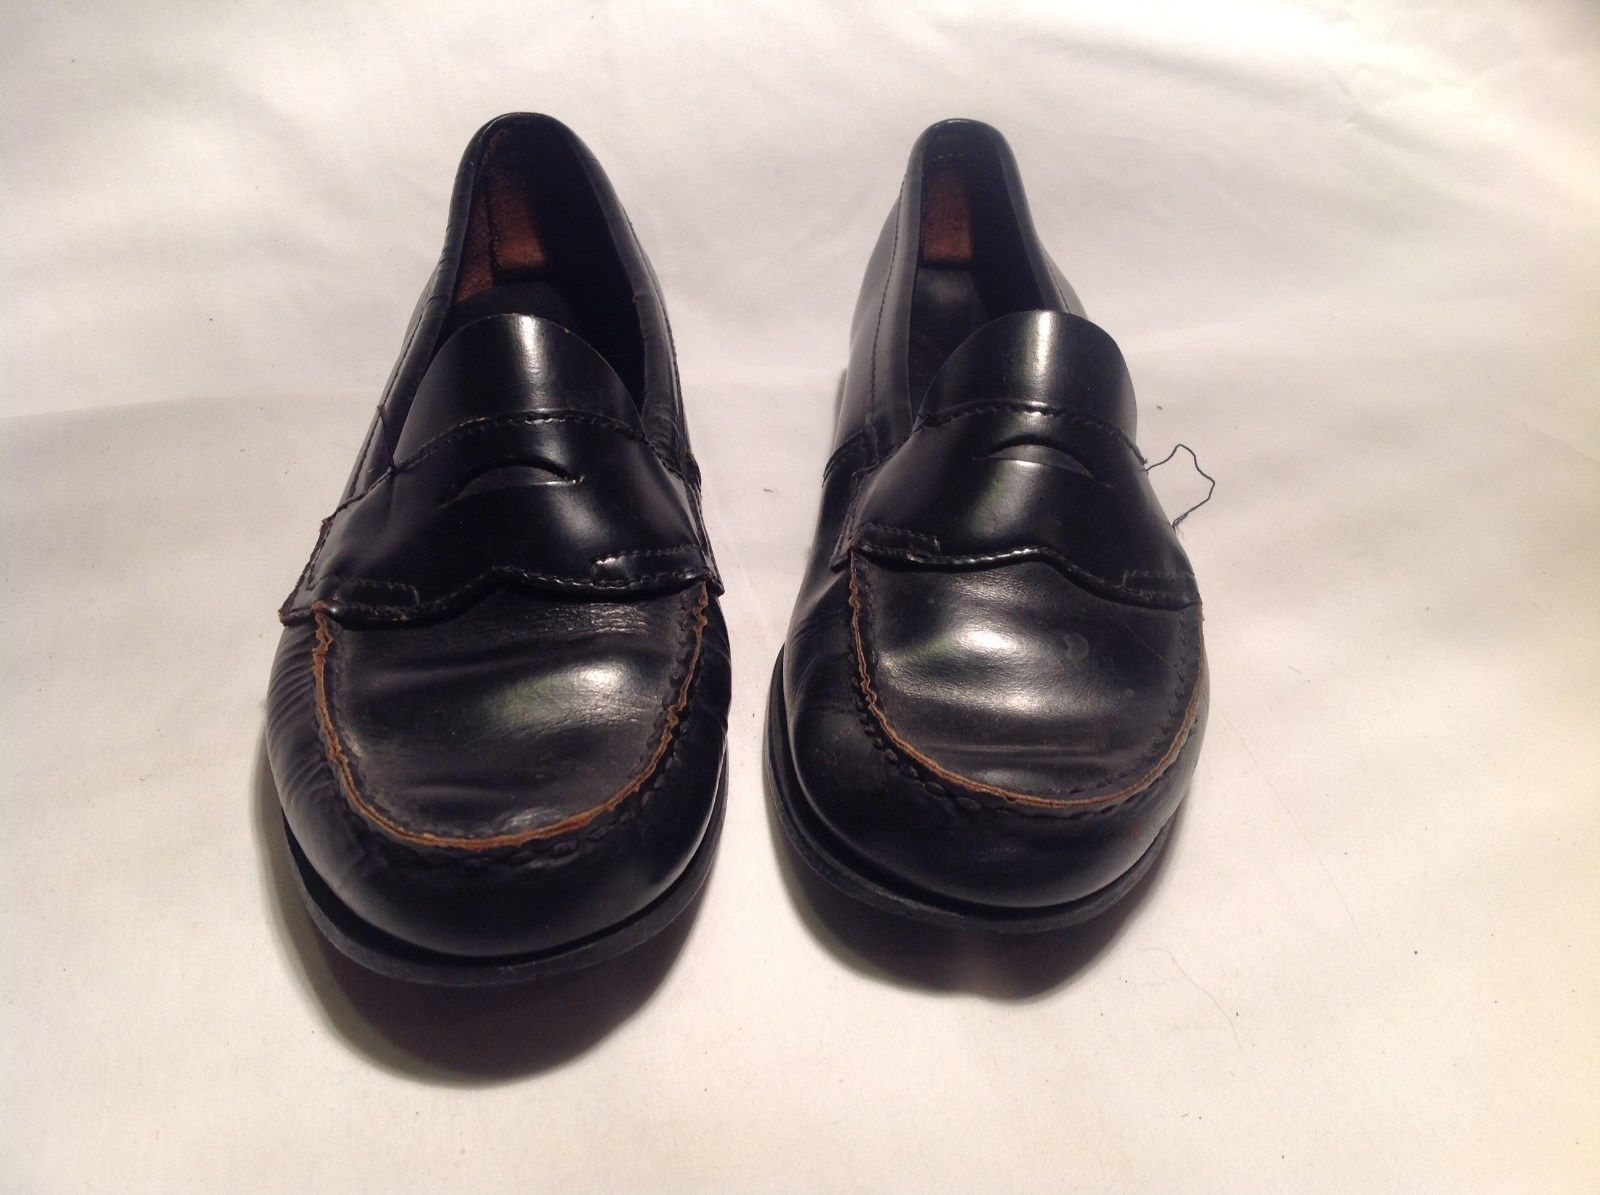 Bass Black Leather Loafer Small Heel Size Measurements Below